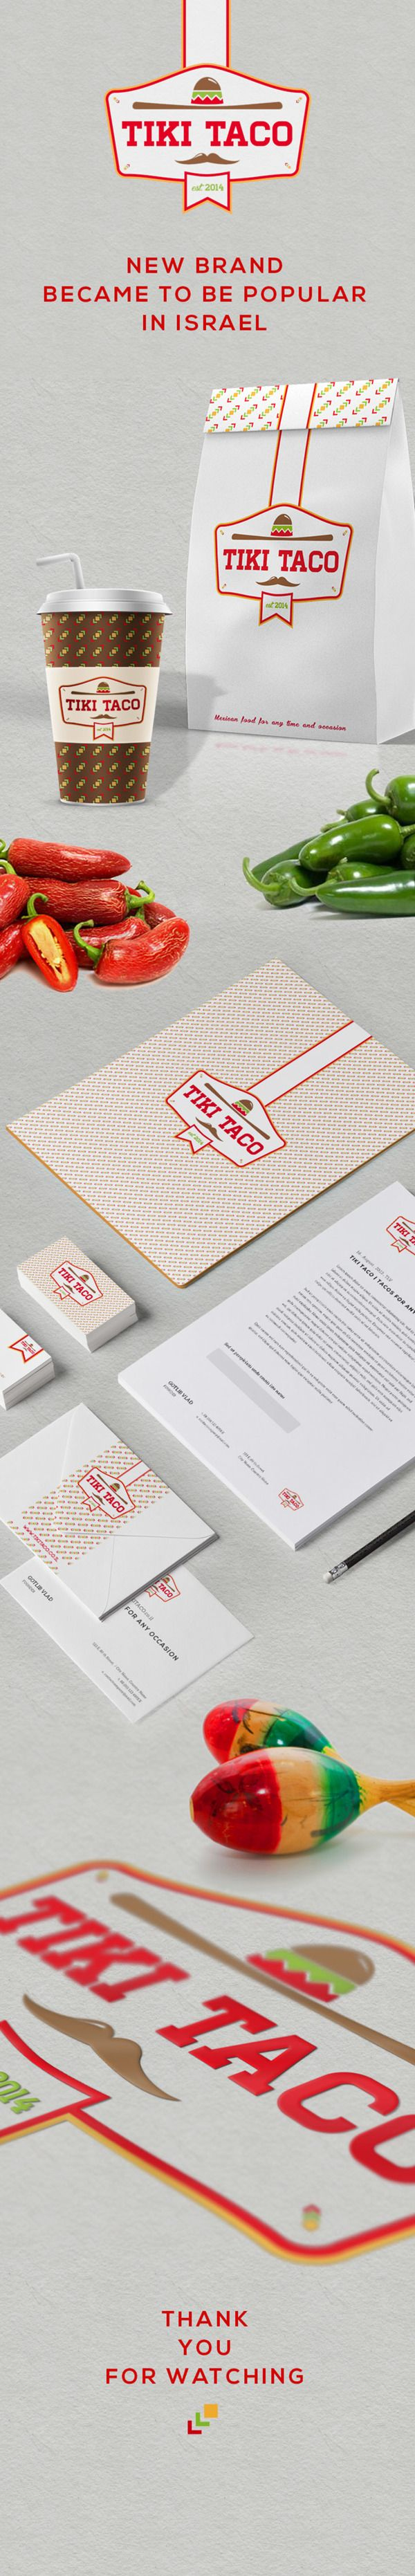 """DEVELOPING LOGO AND BRAND IDENTITY FOR A FAST FOOD STORE """"TIKI TACO"""" IN ISRAEL"""